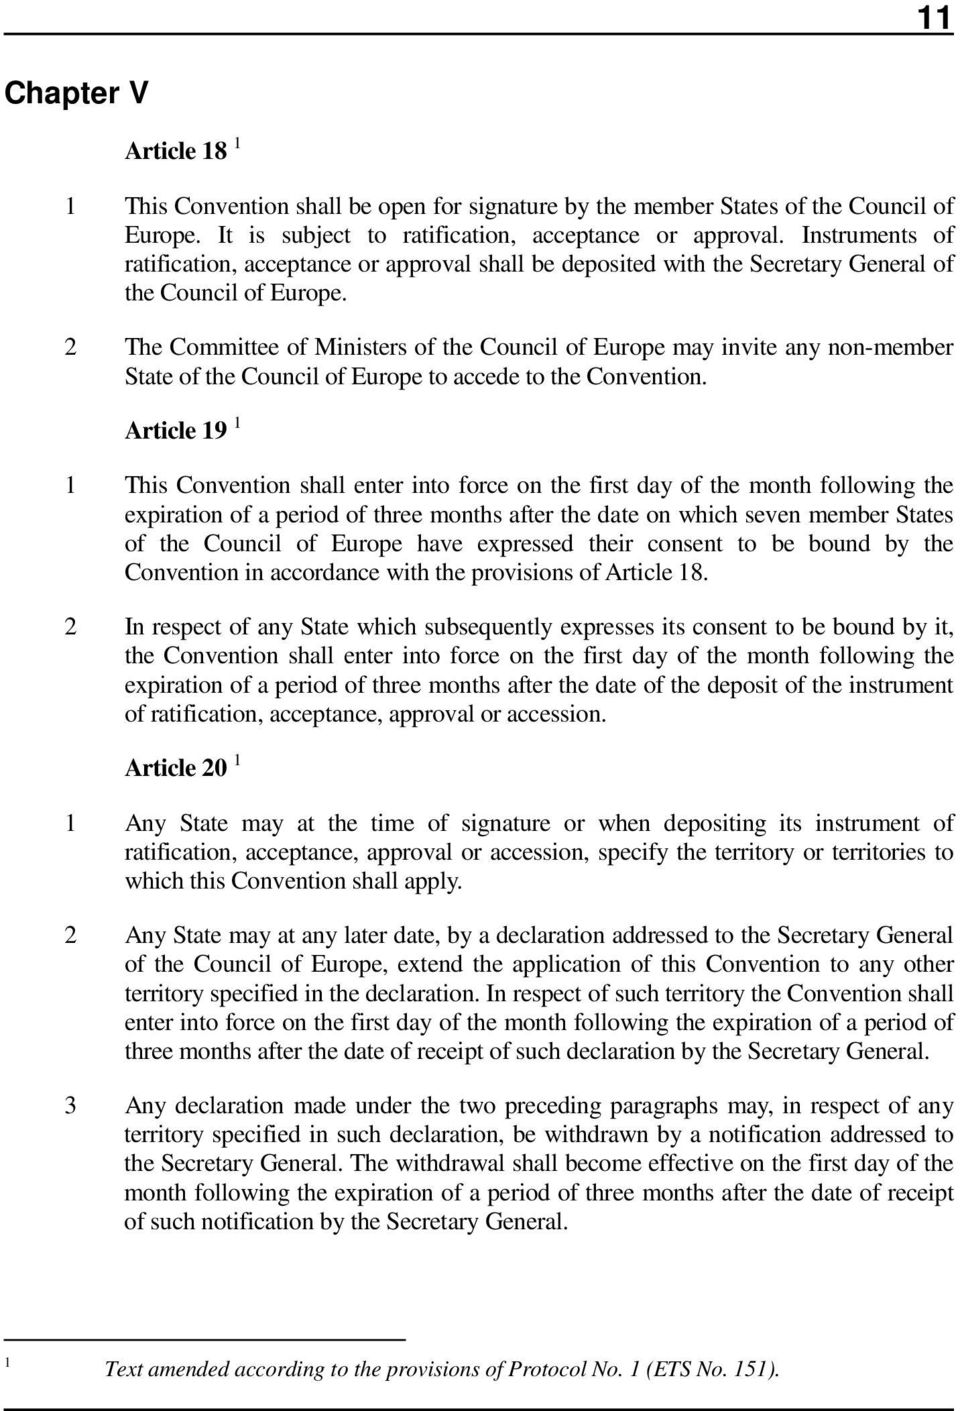 2 The Committee of Ministers of the Council of Europe may invite any non-member State of the Council of Europe to accede to the Convention.